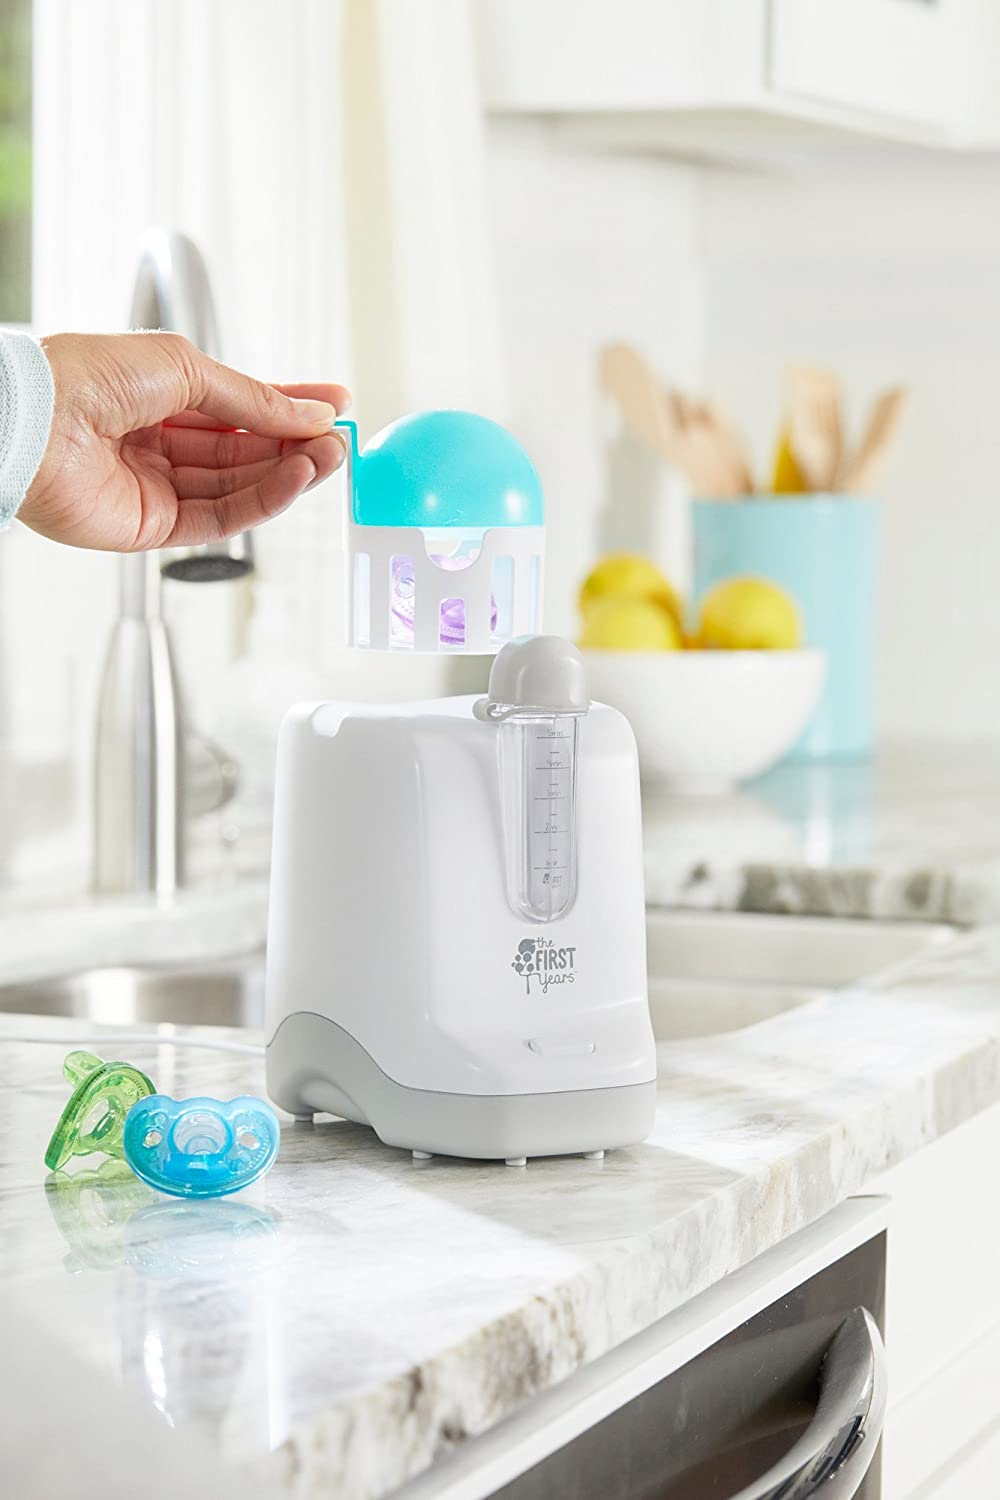 The First Years 2-in-1 Simple Serve Bottle Warmer | Quickly Warm Bottles of Breastmilk or Formula | Sanitize Pacifiers | Compact Design | Holds Wide Narrow and Angled Bottles